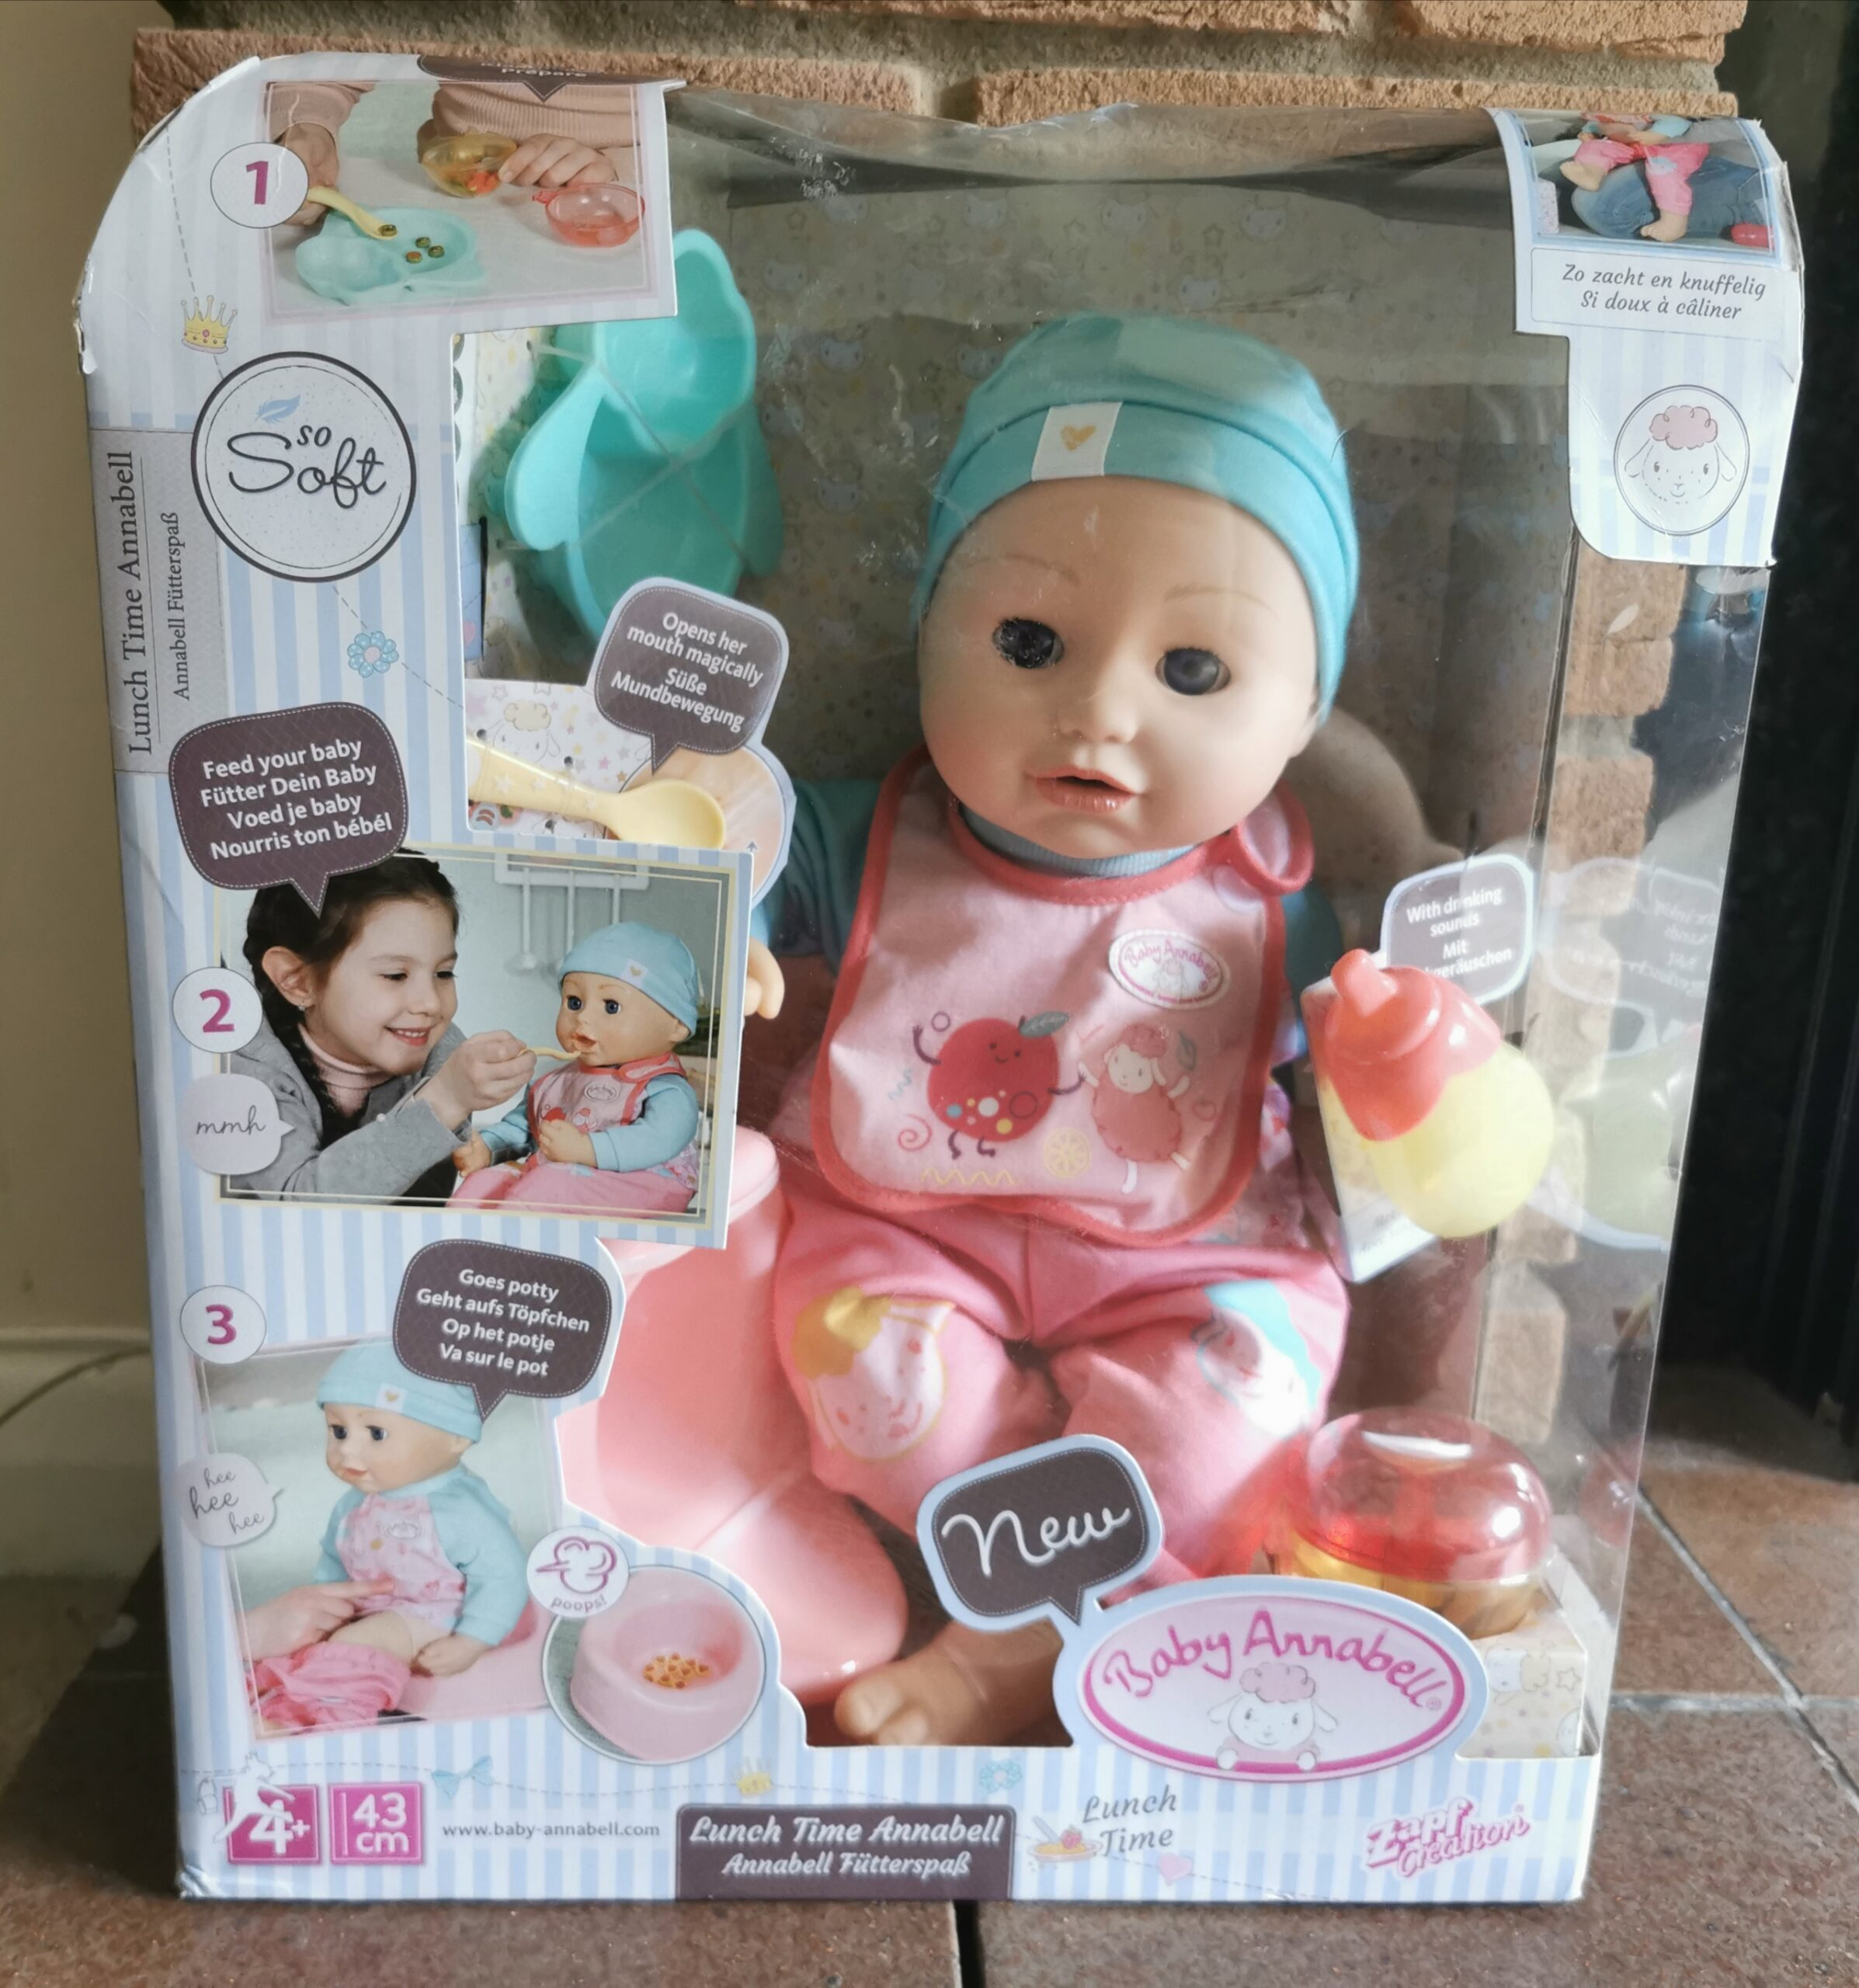 Baby Annabell Lunch Time Annabell   Review - Futures - UK ...